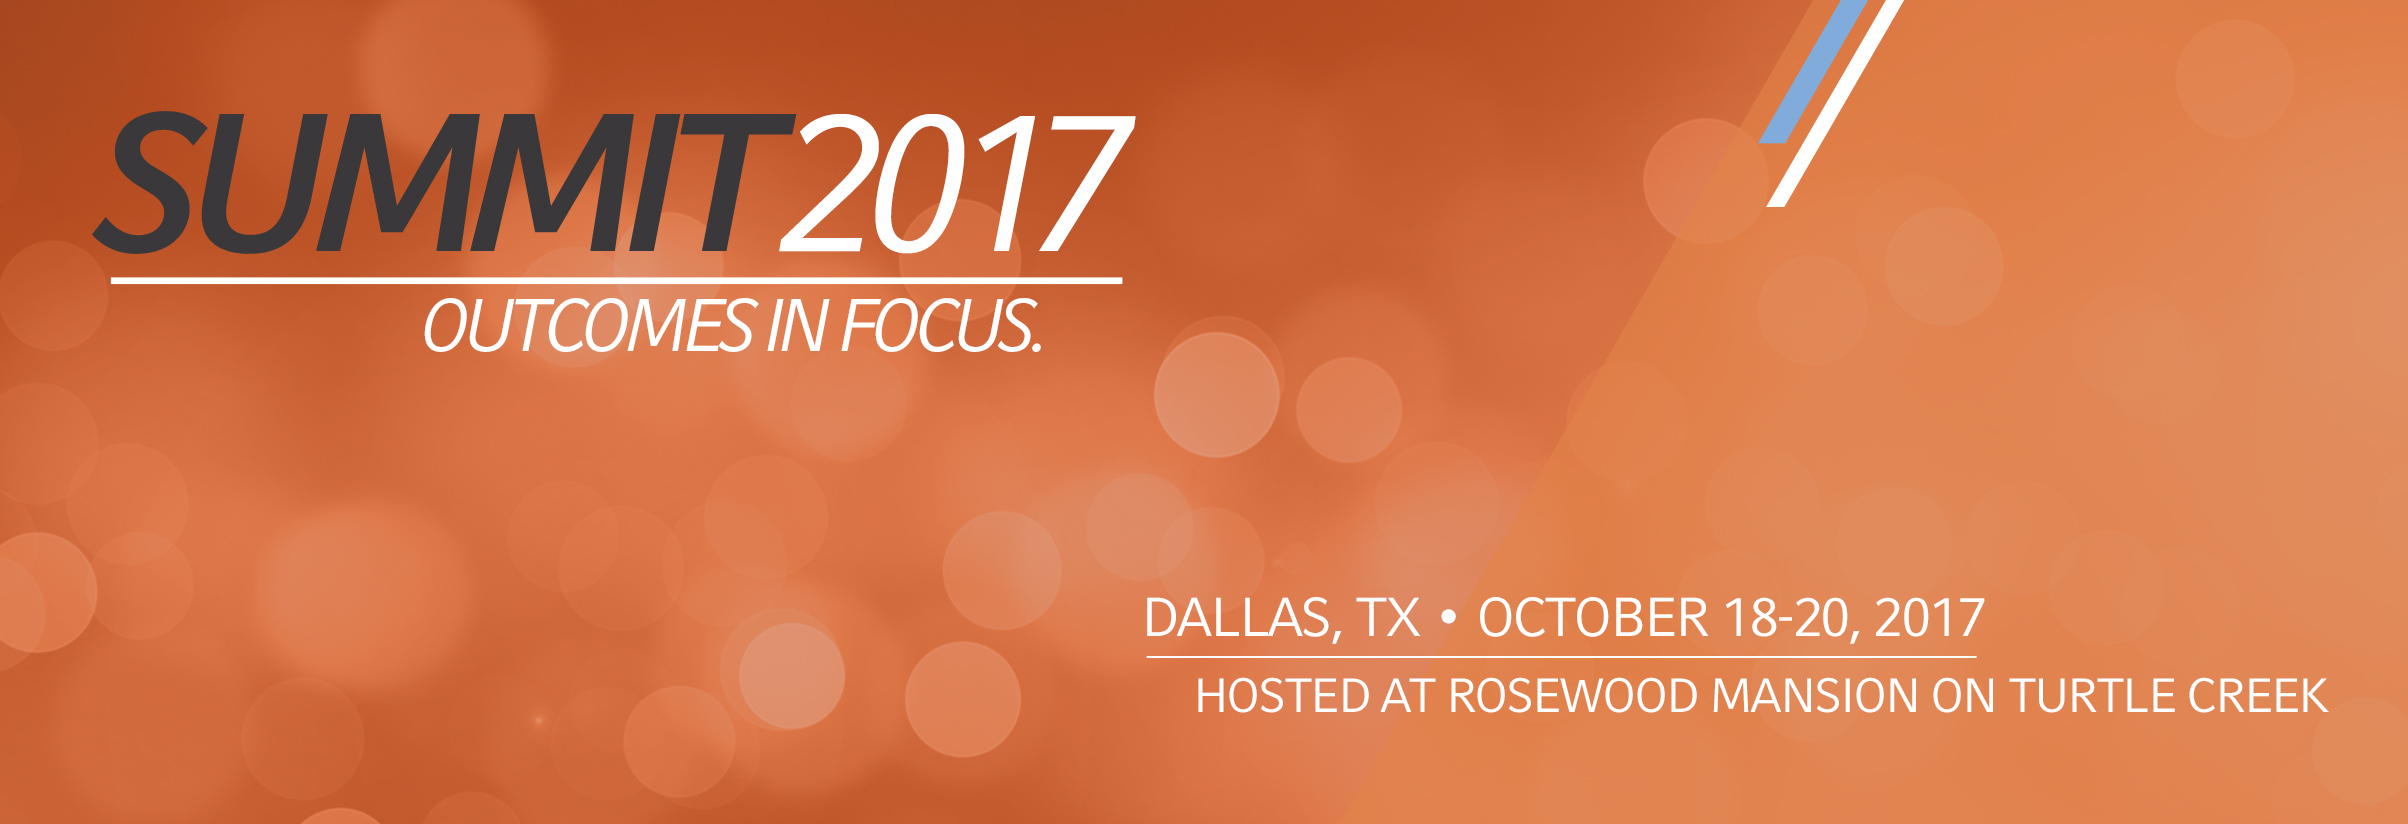 SUMMIT 2017 Russell Investments Advisor Conference October 18-20, 2017